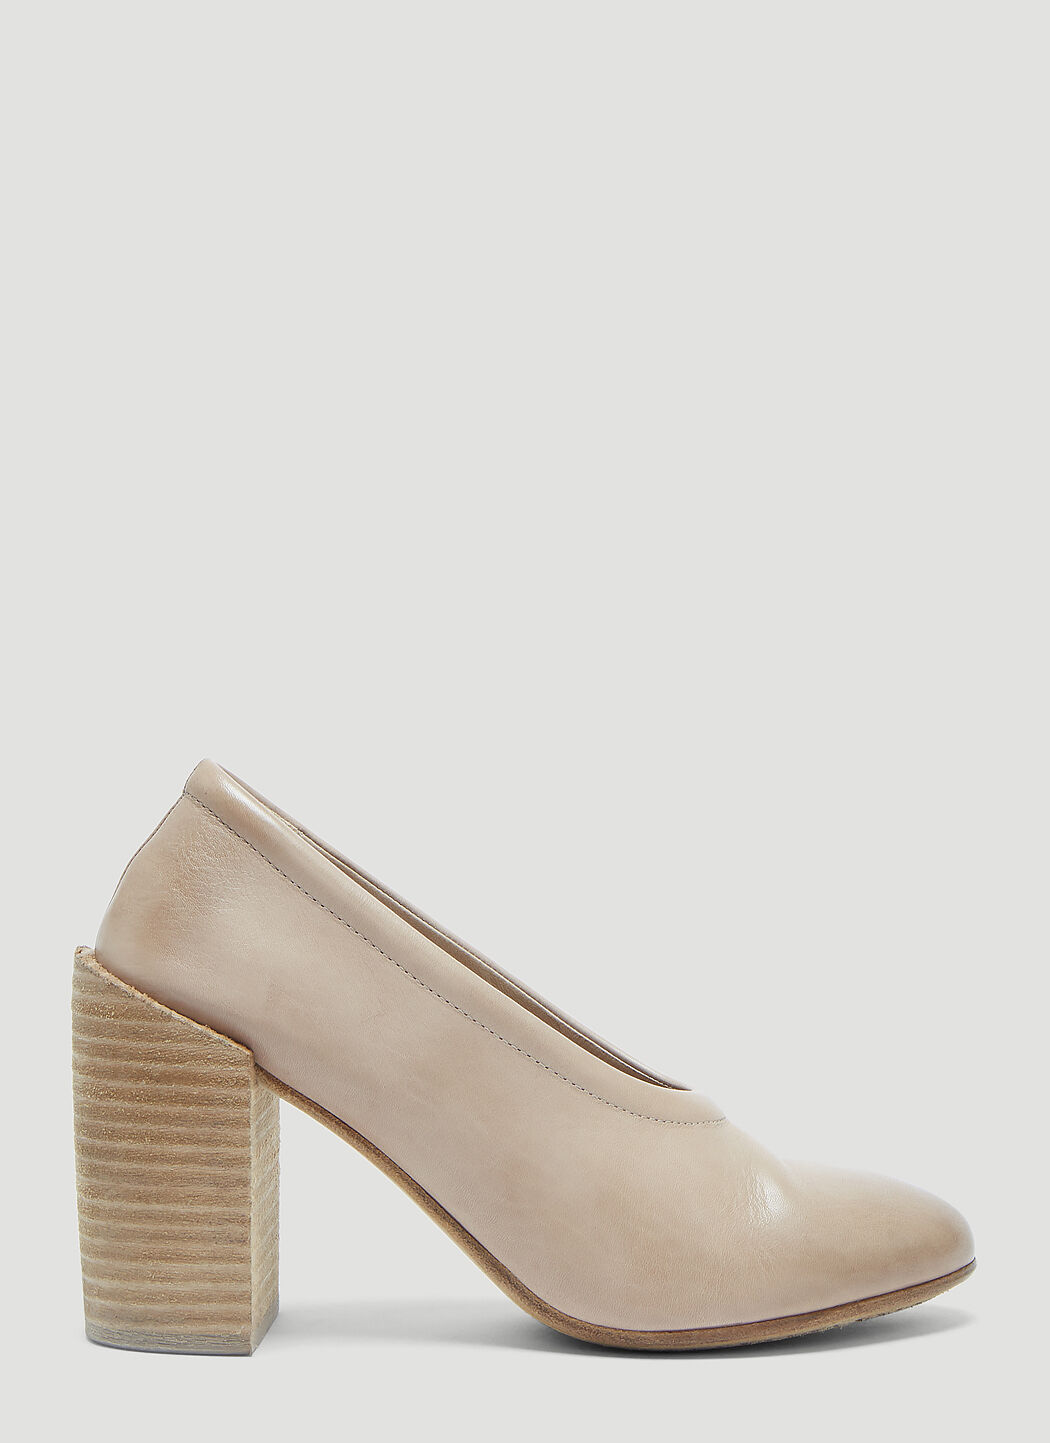 Marsèll Taporsolo Leather Heels in Tan